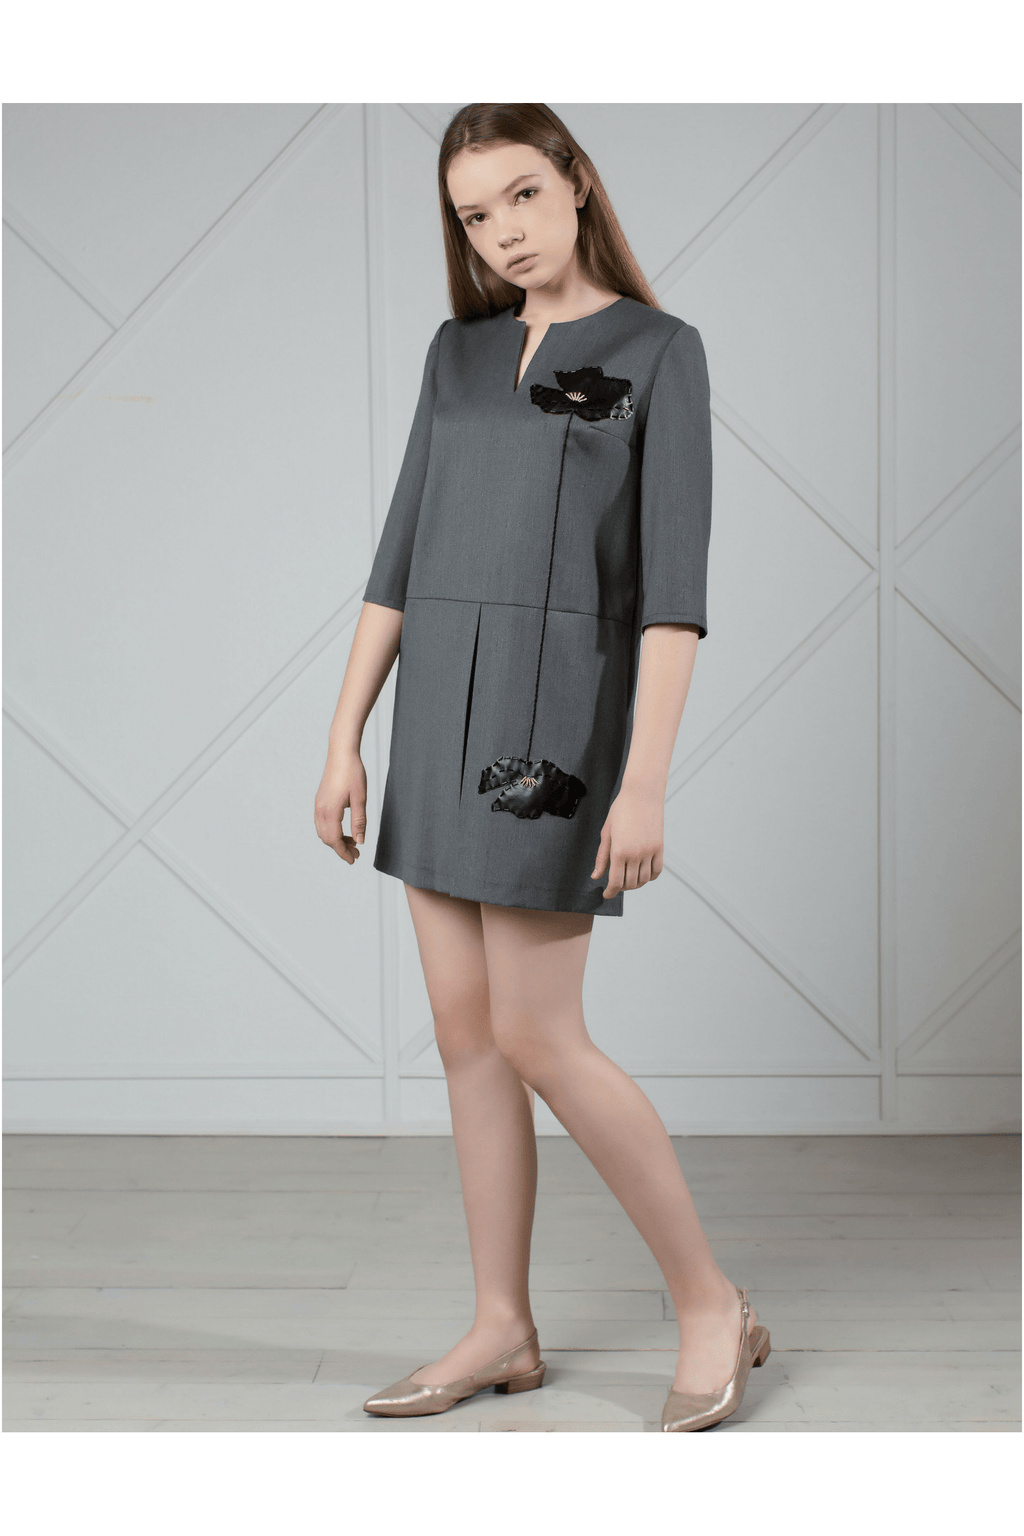 Gray wool mini dress with leather appliqué - Himelhoch's